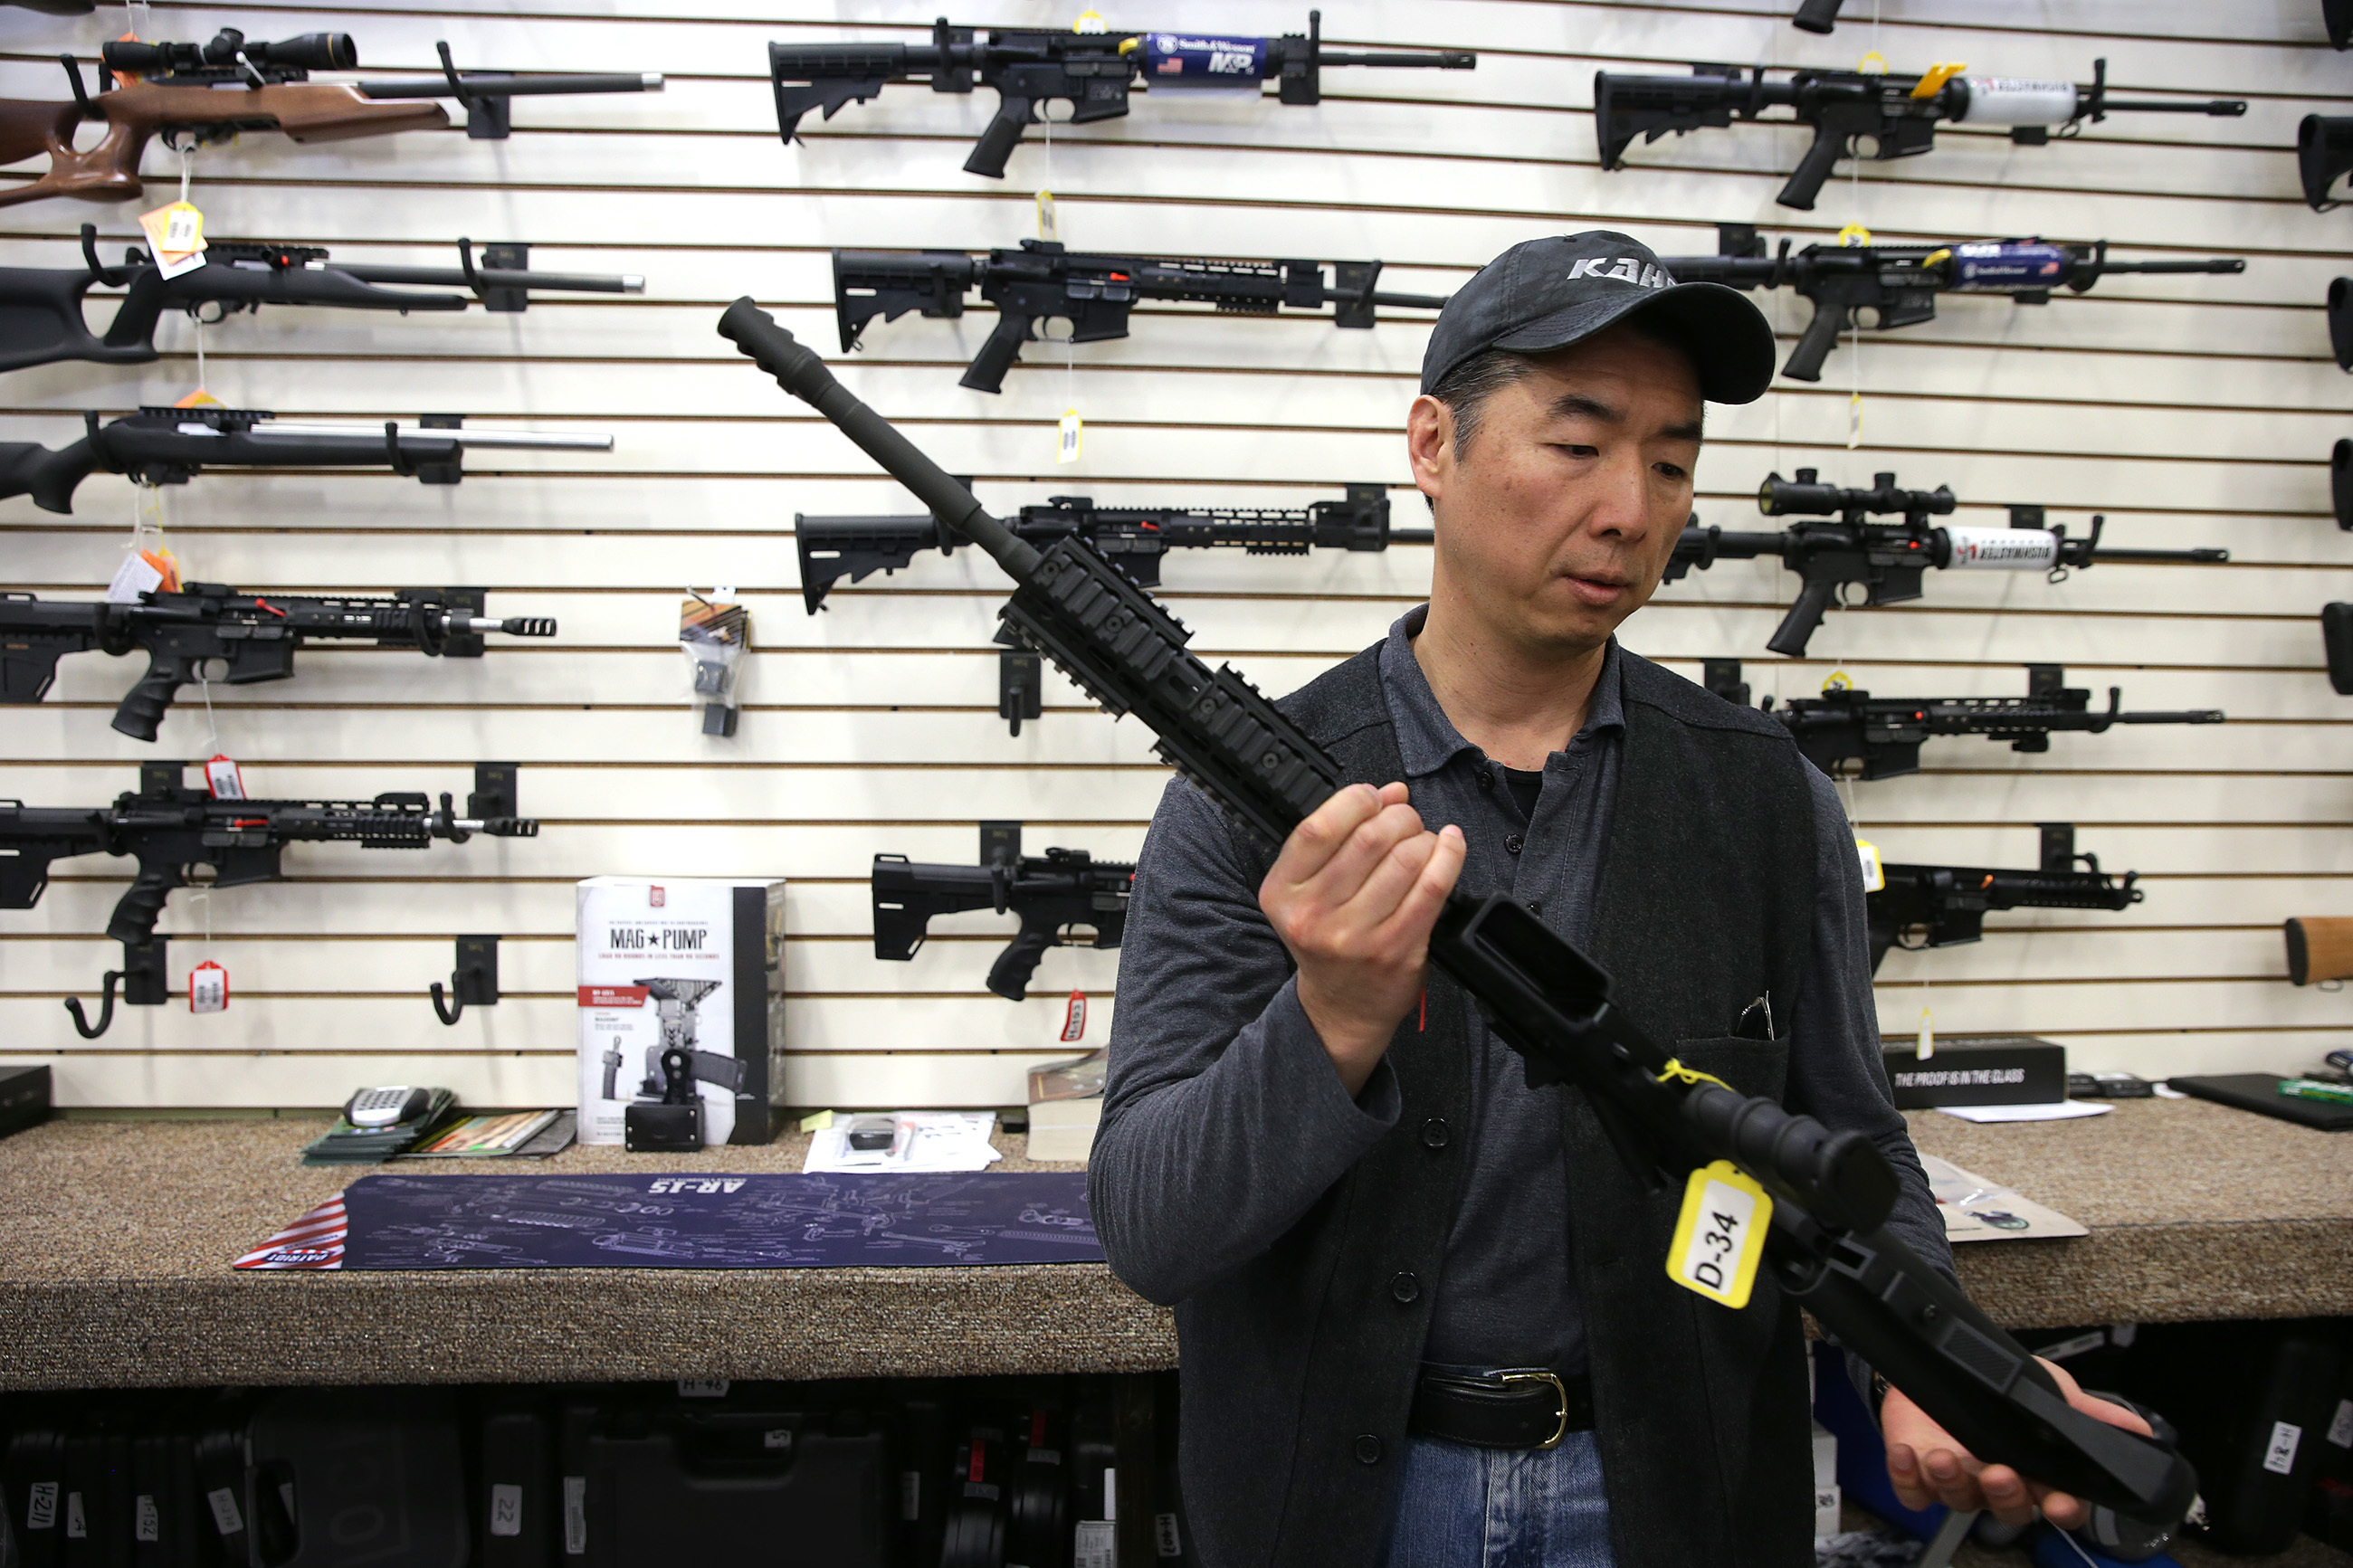 Justin Moon, owner of Kahr Arms, talks about an AR-15 in their retail shop at their corporate headquarters in Greeley, PA on March 9, 2018. The AR-15 was made by his company. DAVID MAIALETTI / Staff Photographer